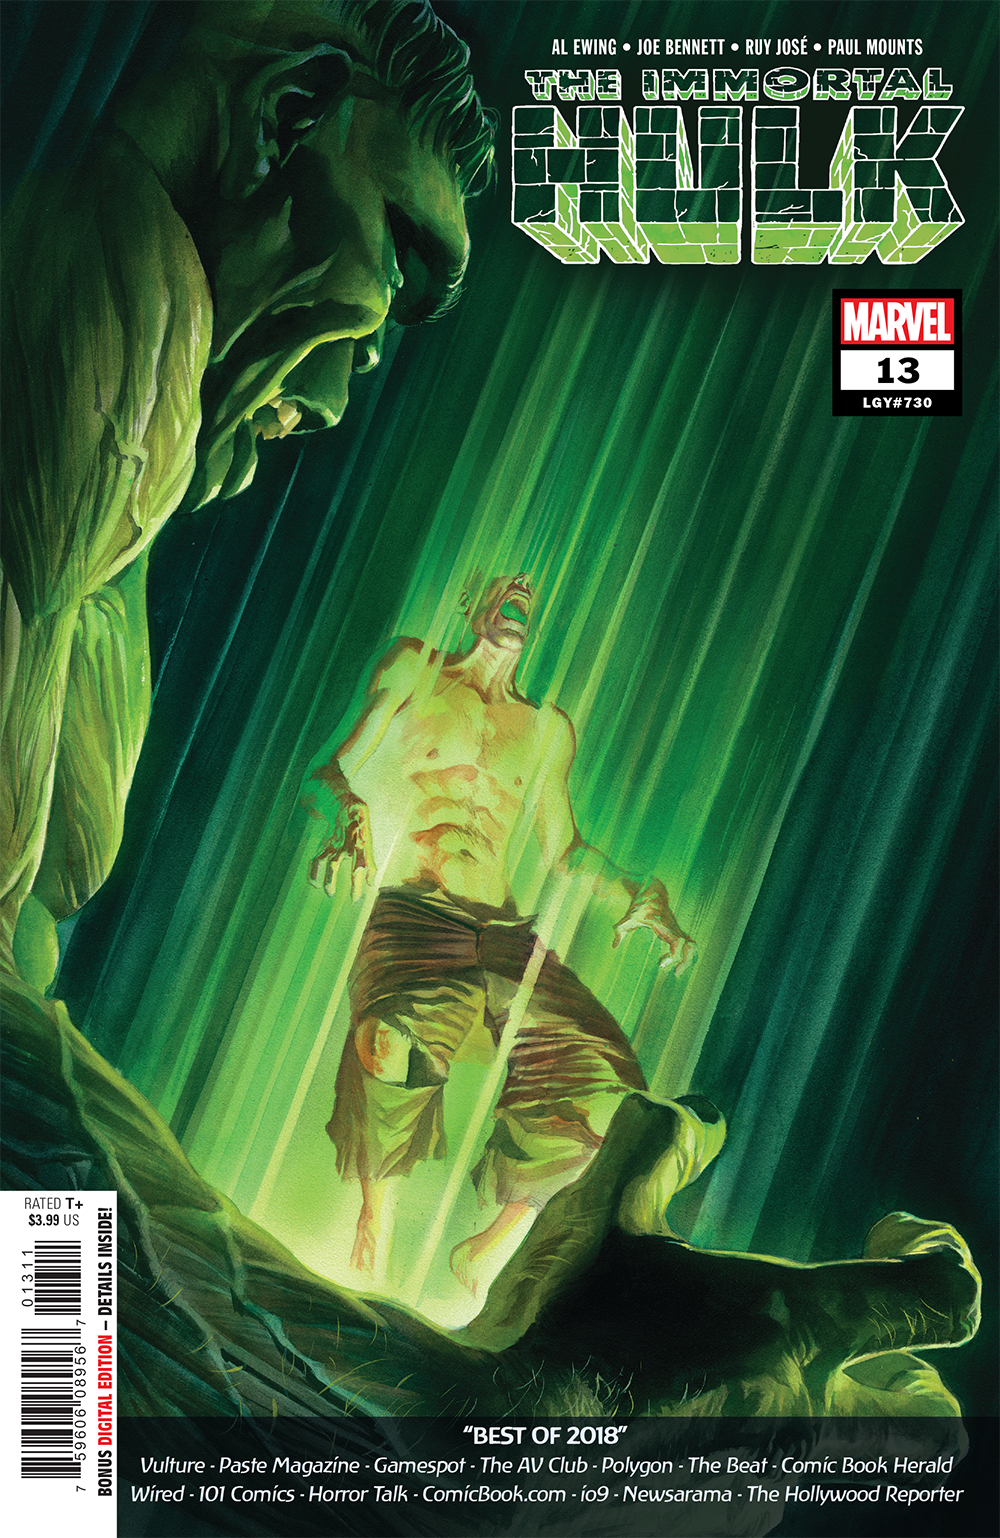 IMMORTAL HULK #13